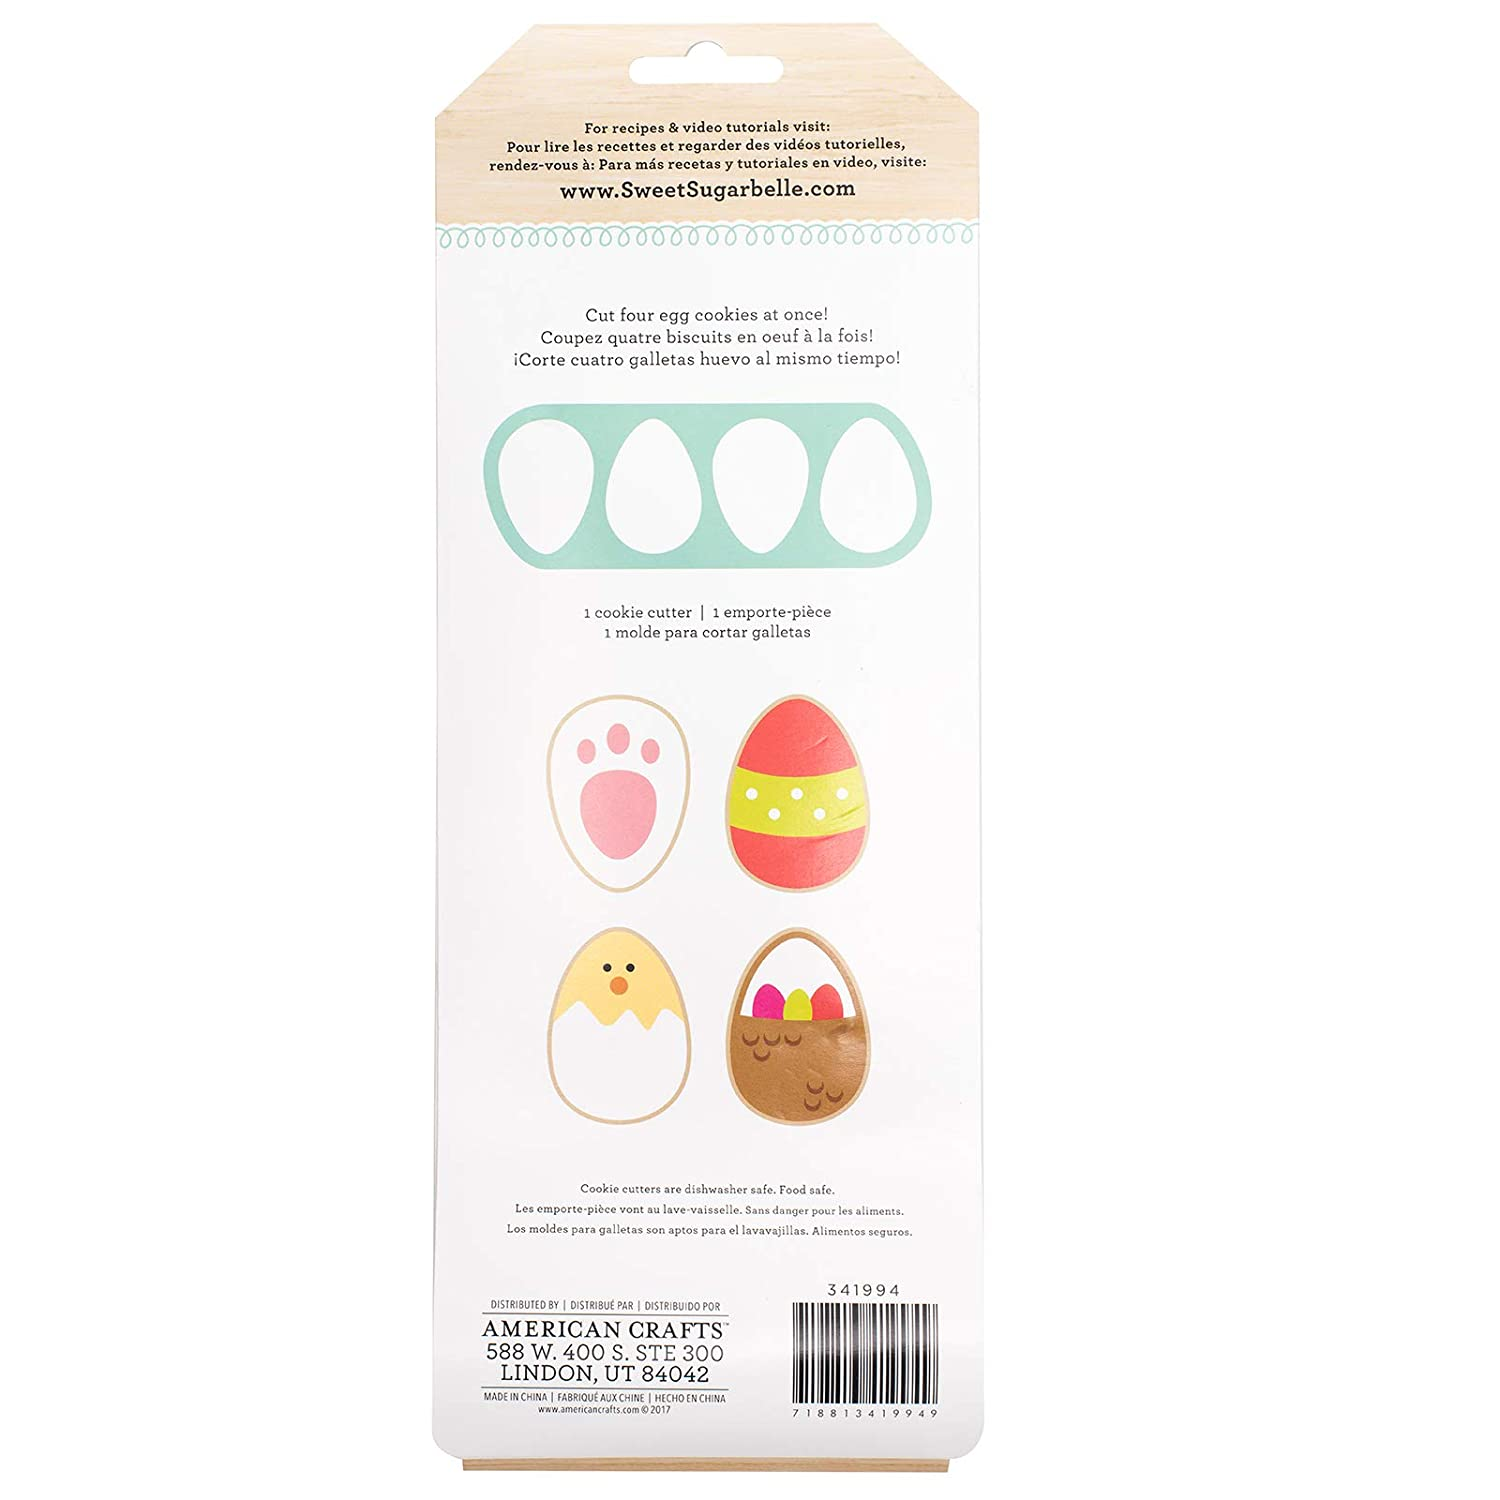 Amazon.com: American Crafts 641994 SB Cookie Cutter Egg Multi: Arts, Crafts & Sewing